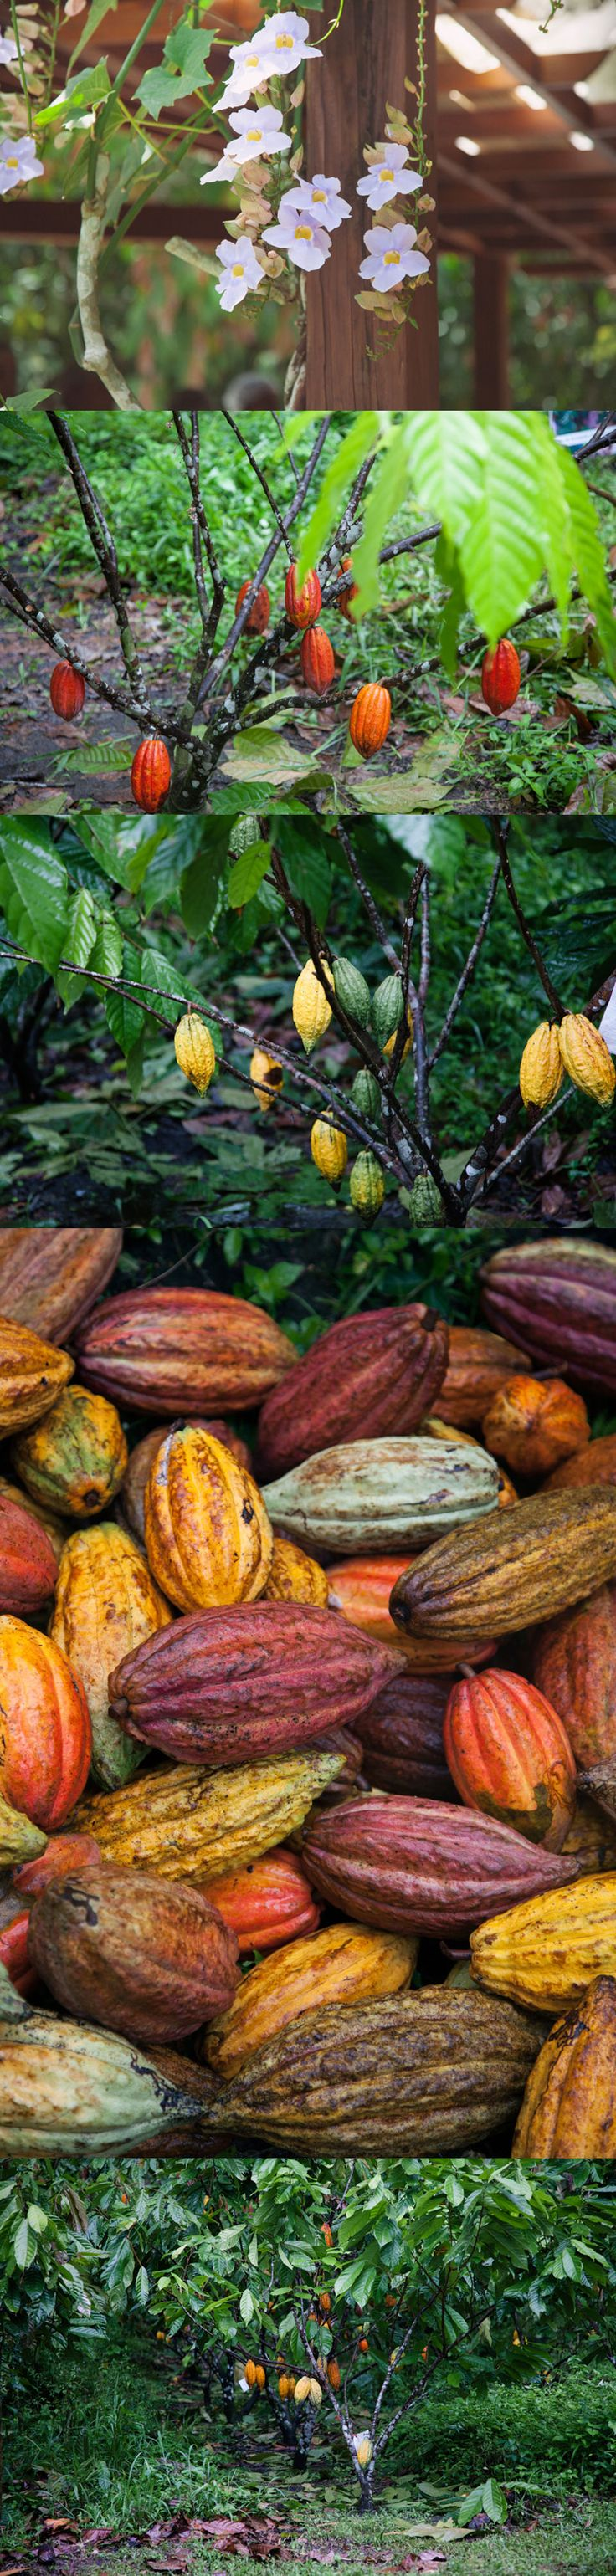 République Dominicaine the best cacao. Brought home 3 pounds! Summer 2013